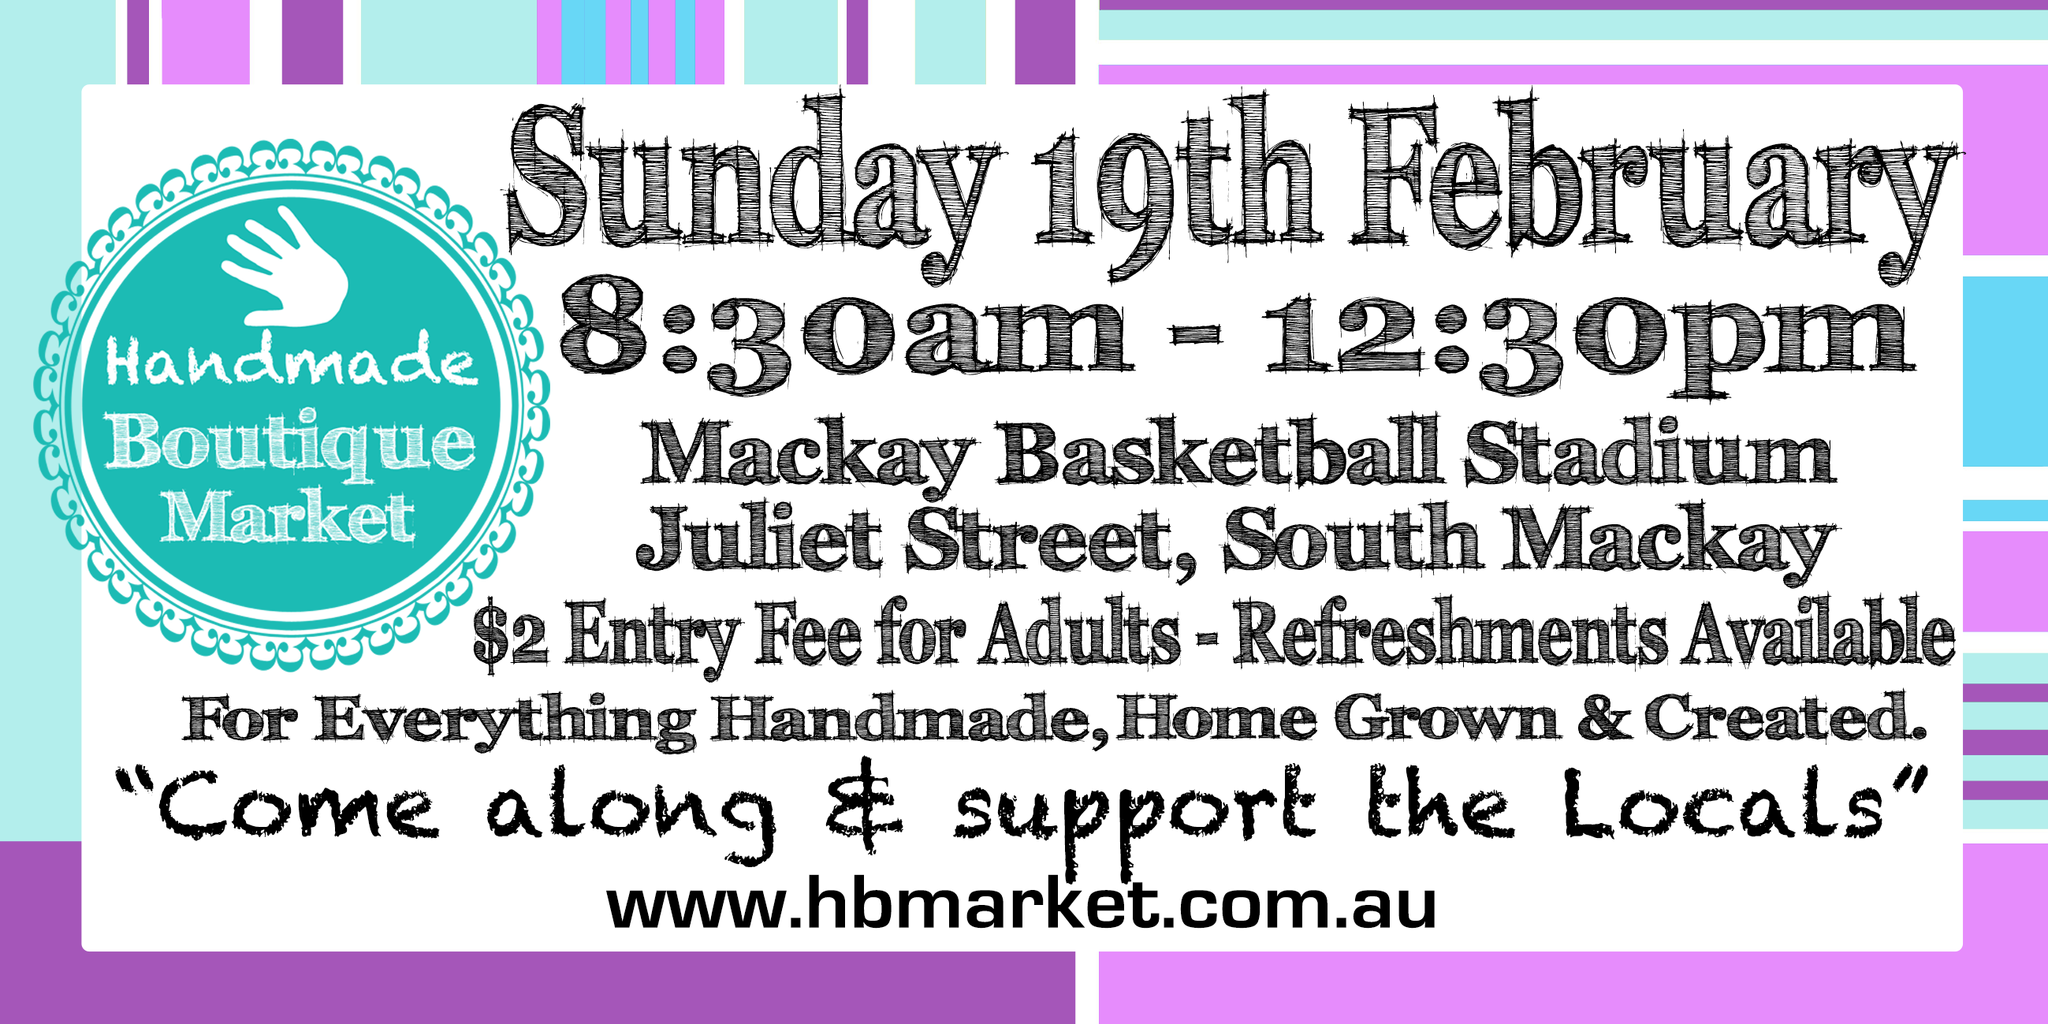 Find us at the handmade market in Mackay!!